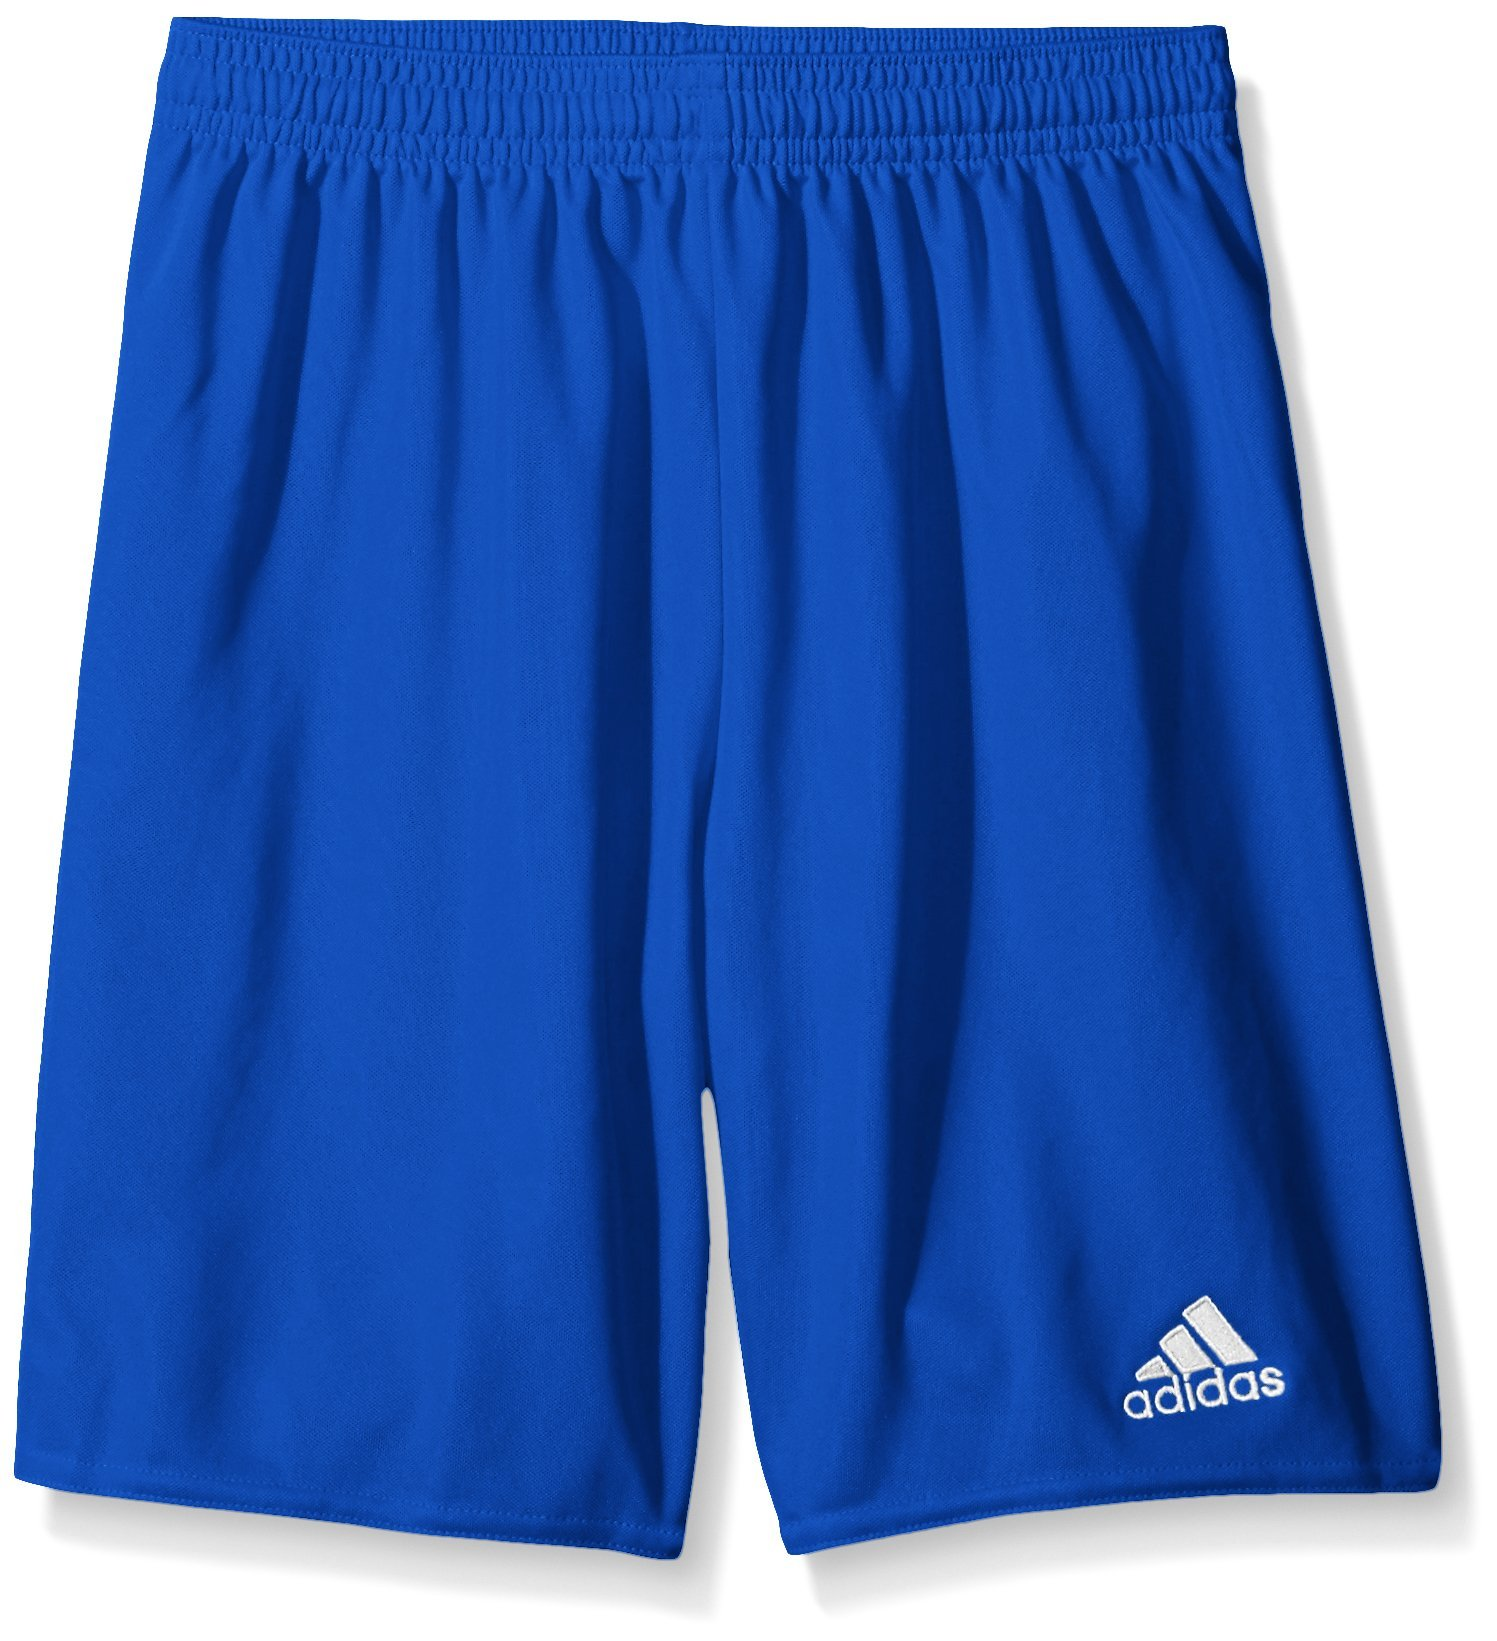 adidas Youth Parma 16 Shorts, Bold Blue/White, XX-Small by adidas